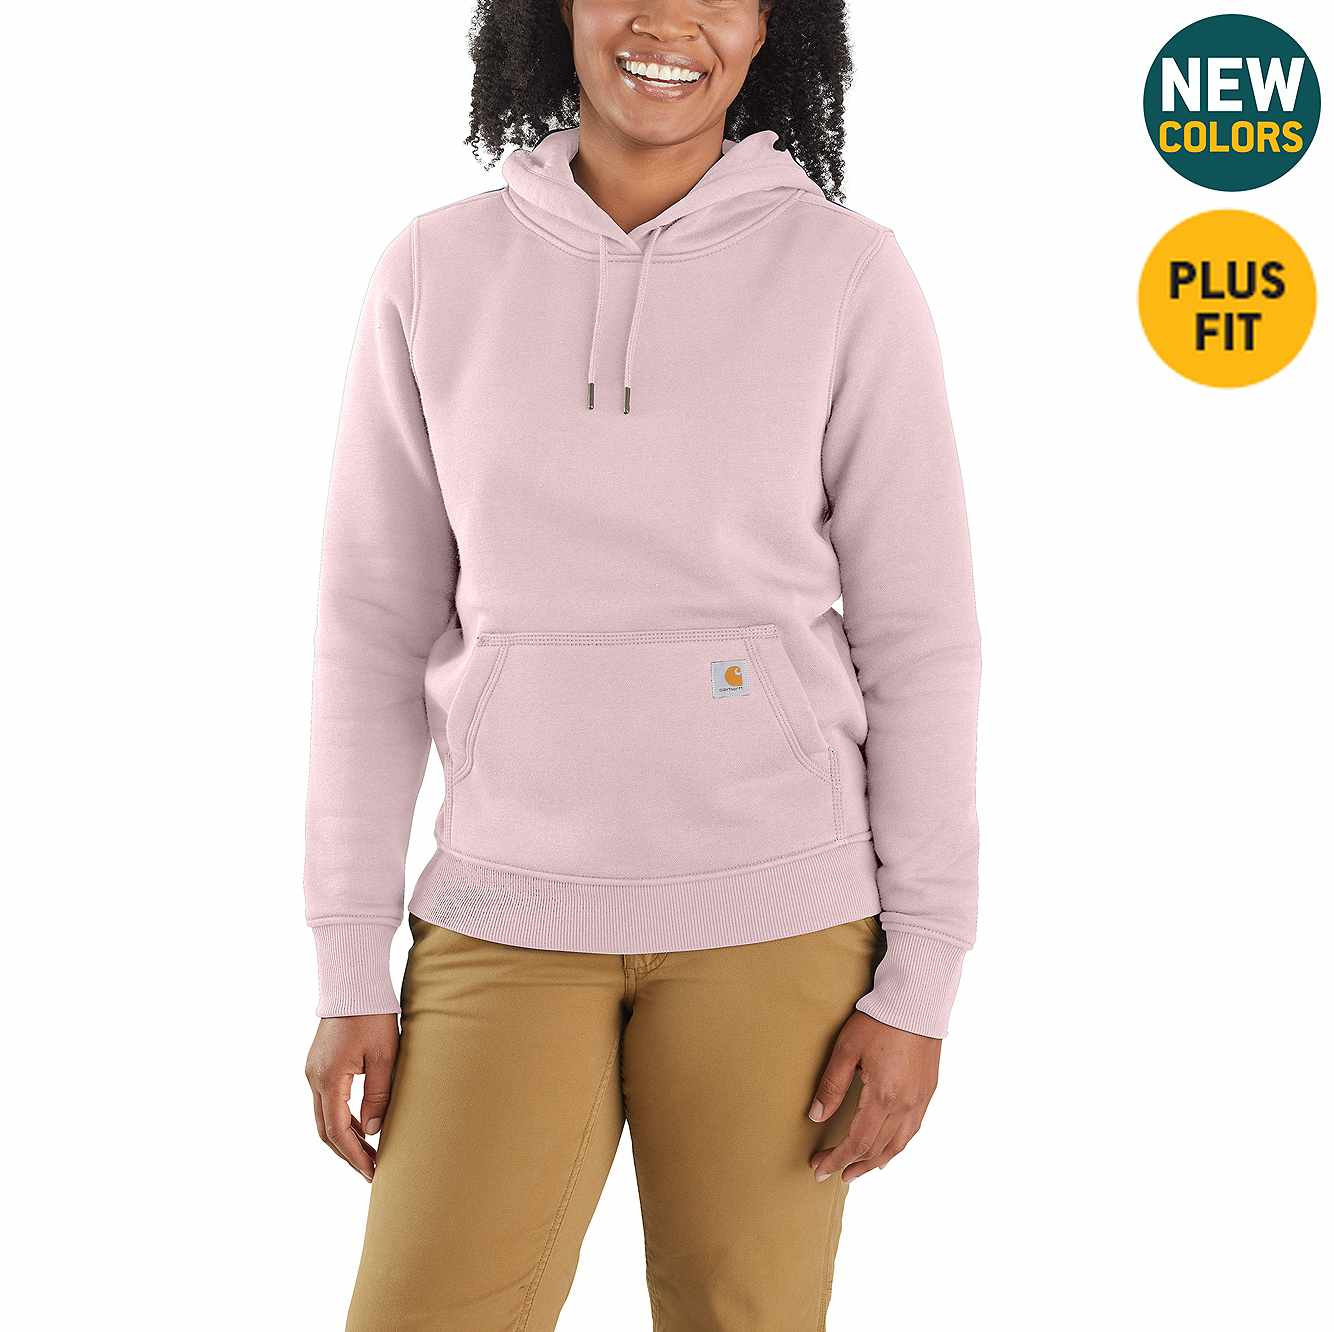 Picture of Clarksburg Pullover Sweatshirt in Crepe